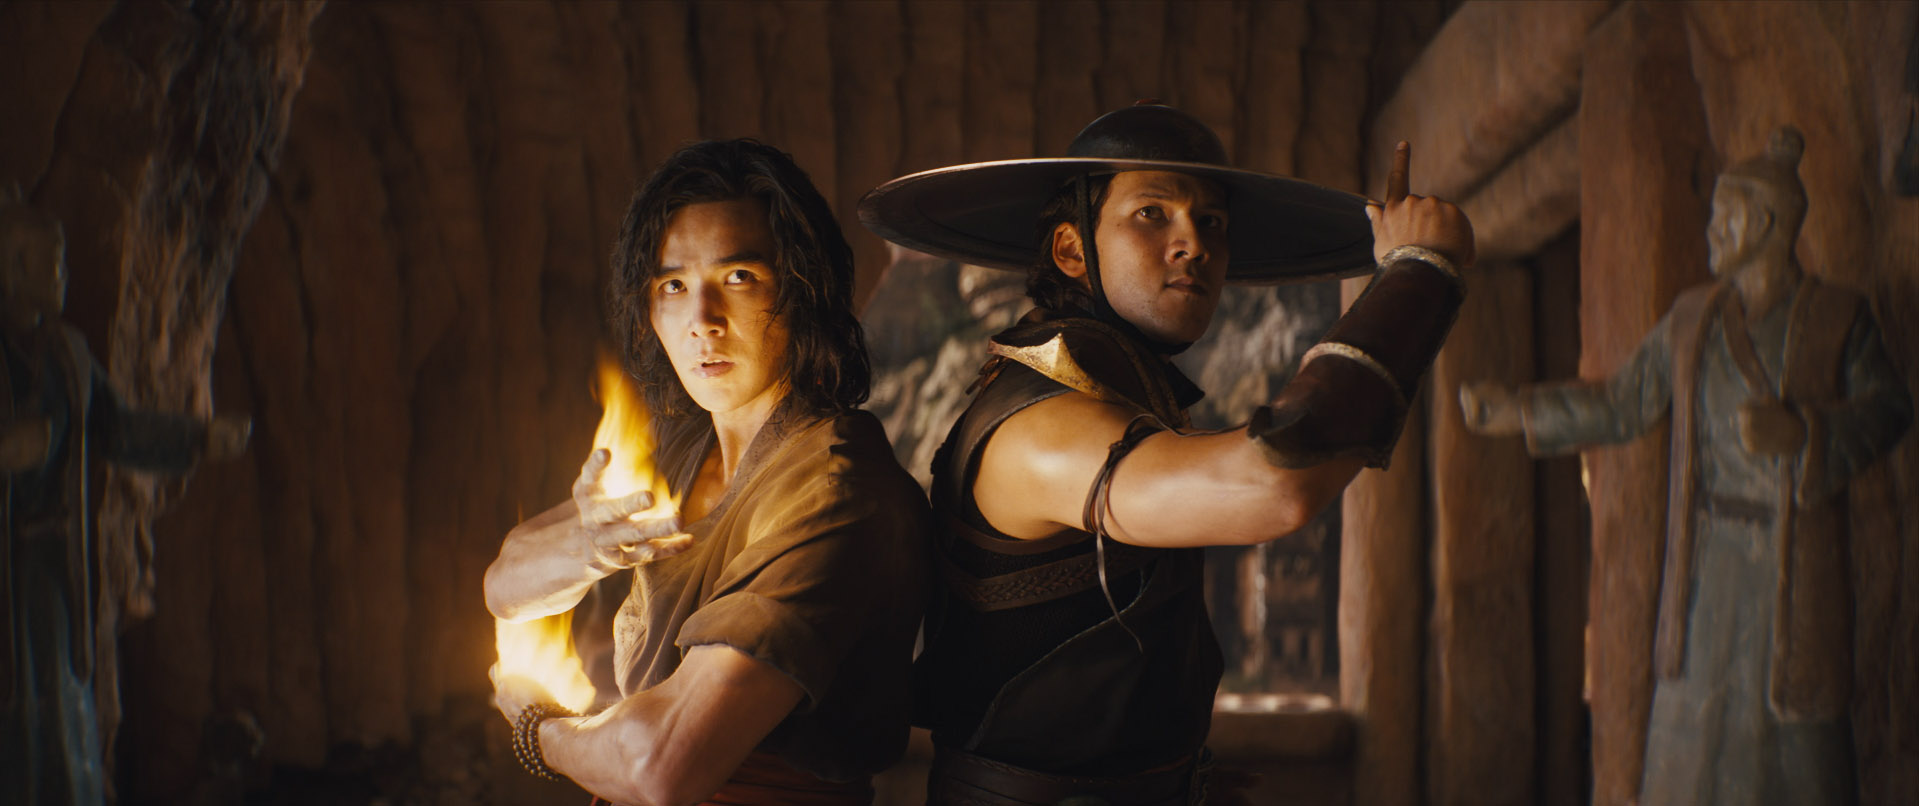 "(L-r) LUDI LIN as Liu Kang and MAX HUANG as Kung Lao in New Line Cinema's action adventure ""Mortal Kombat,"" a Warner Bros. Pictures release."